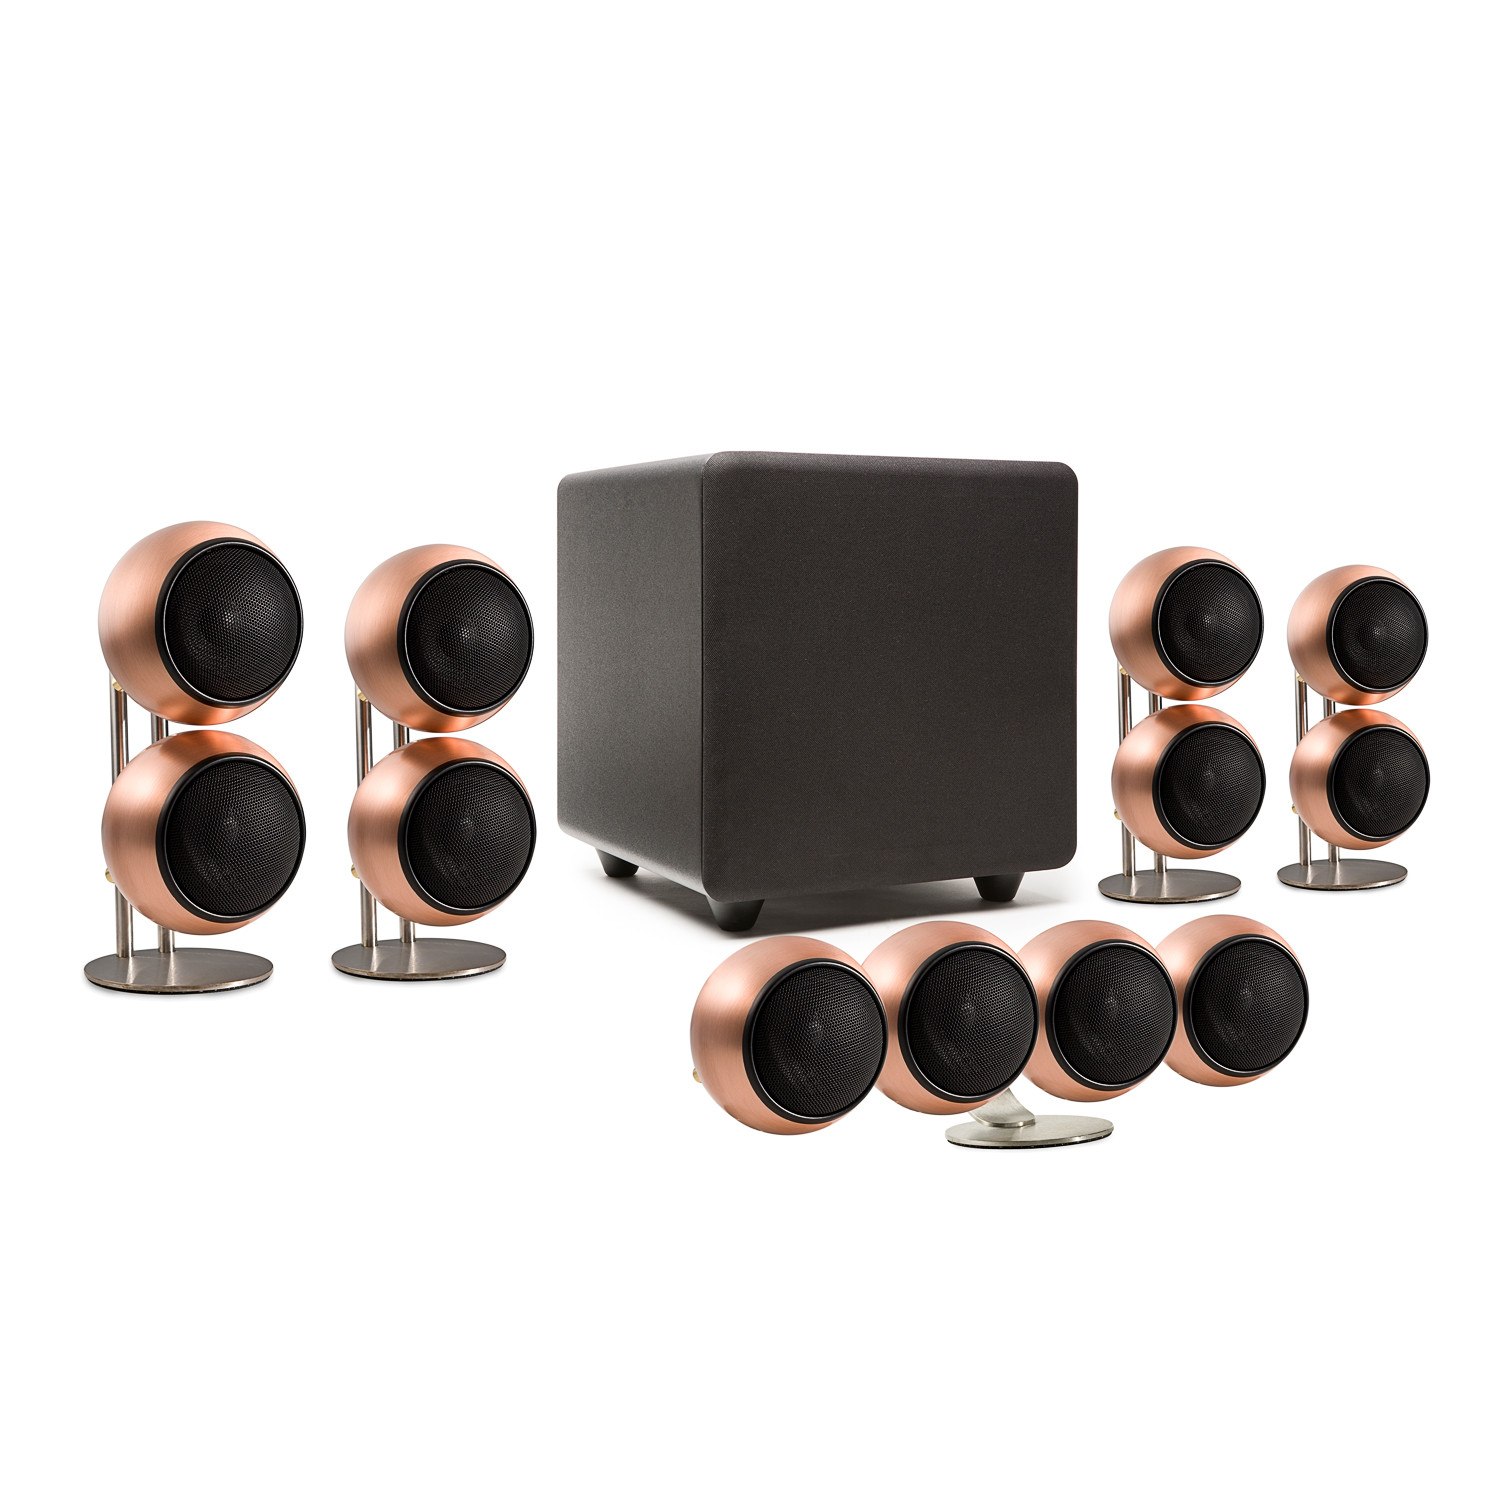 modern home theater speakers. mod2x plus 5.1 home theater speaker system modern speakers r